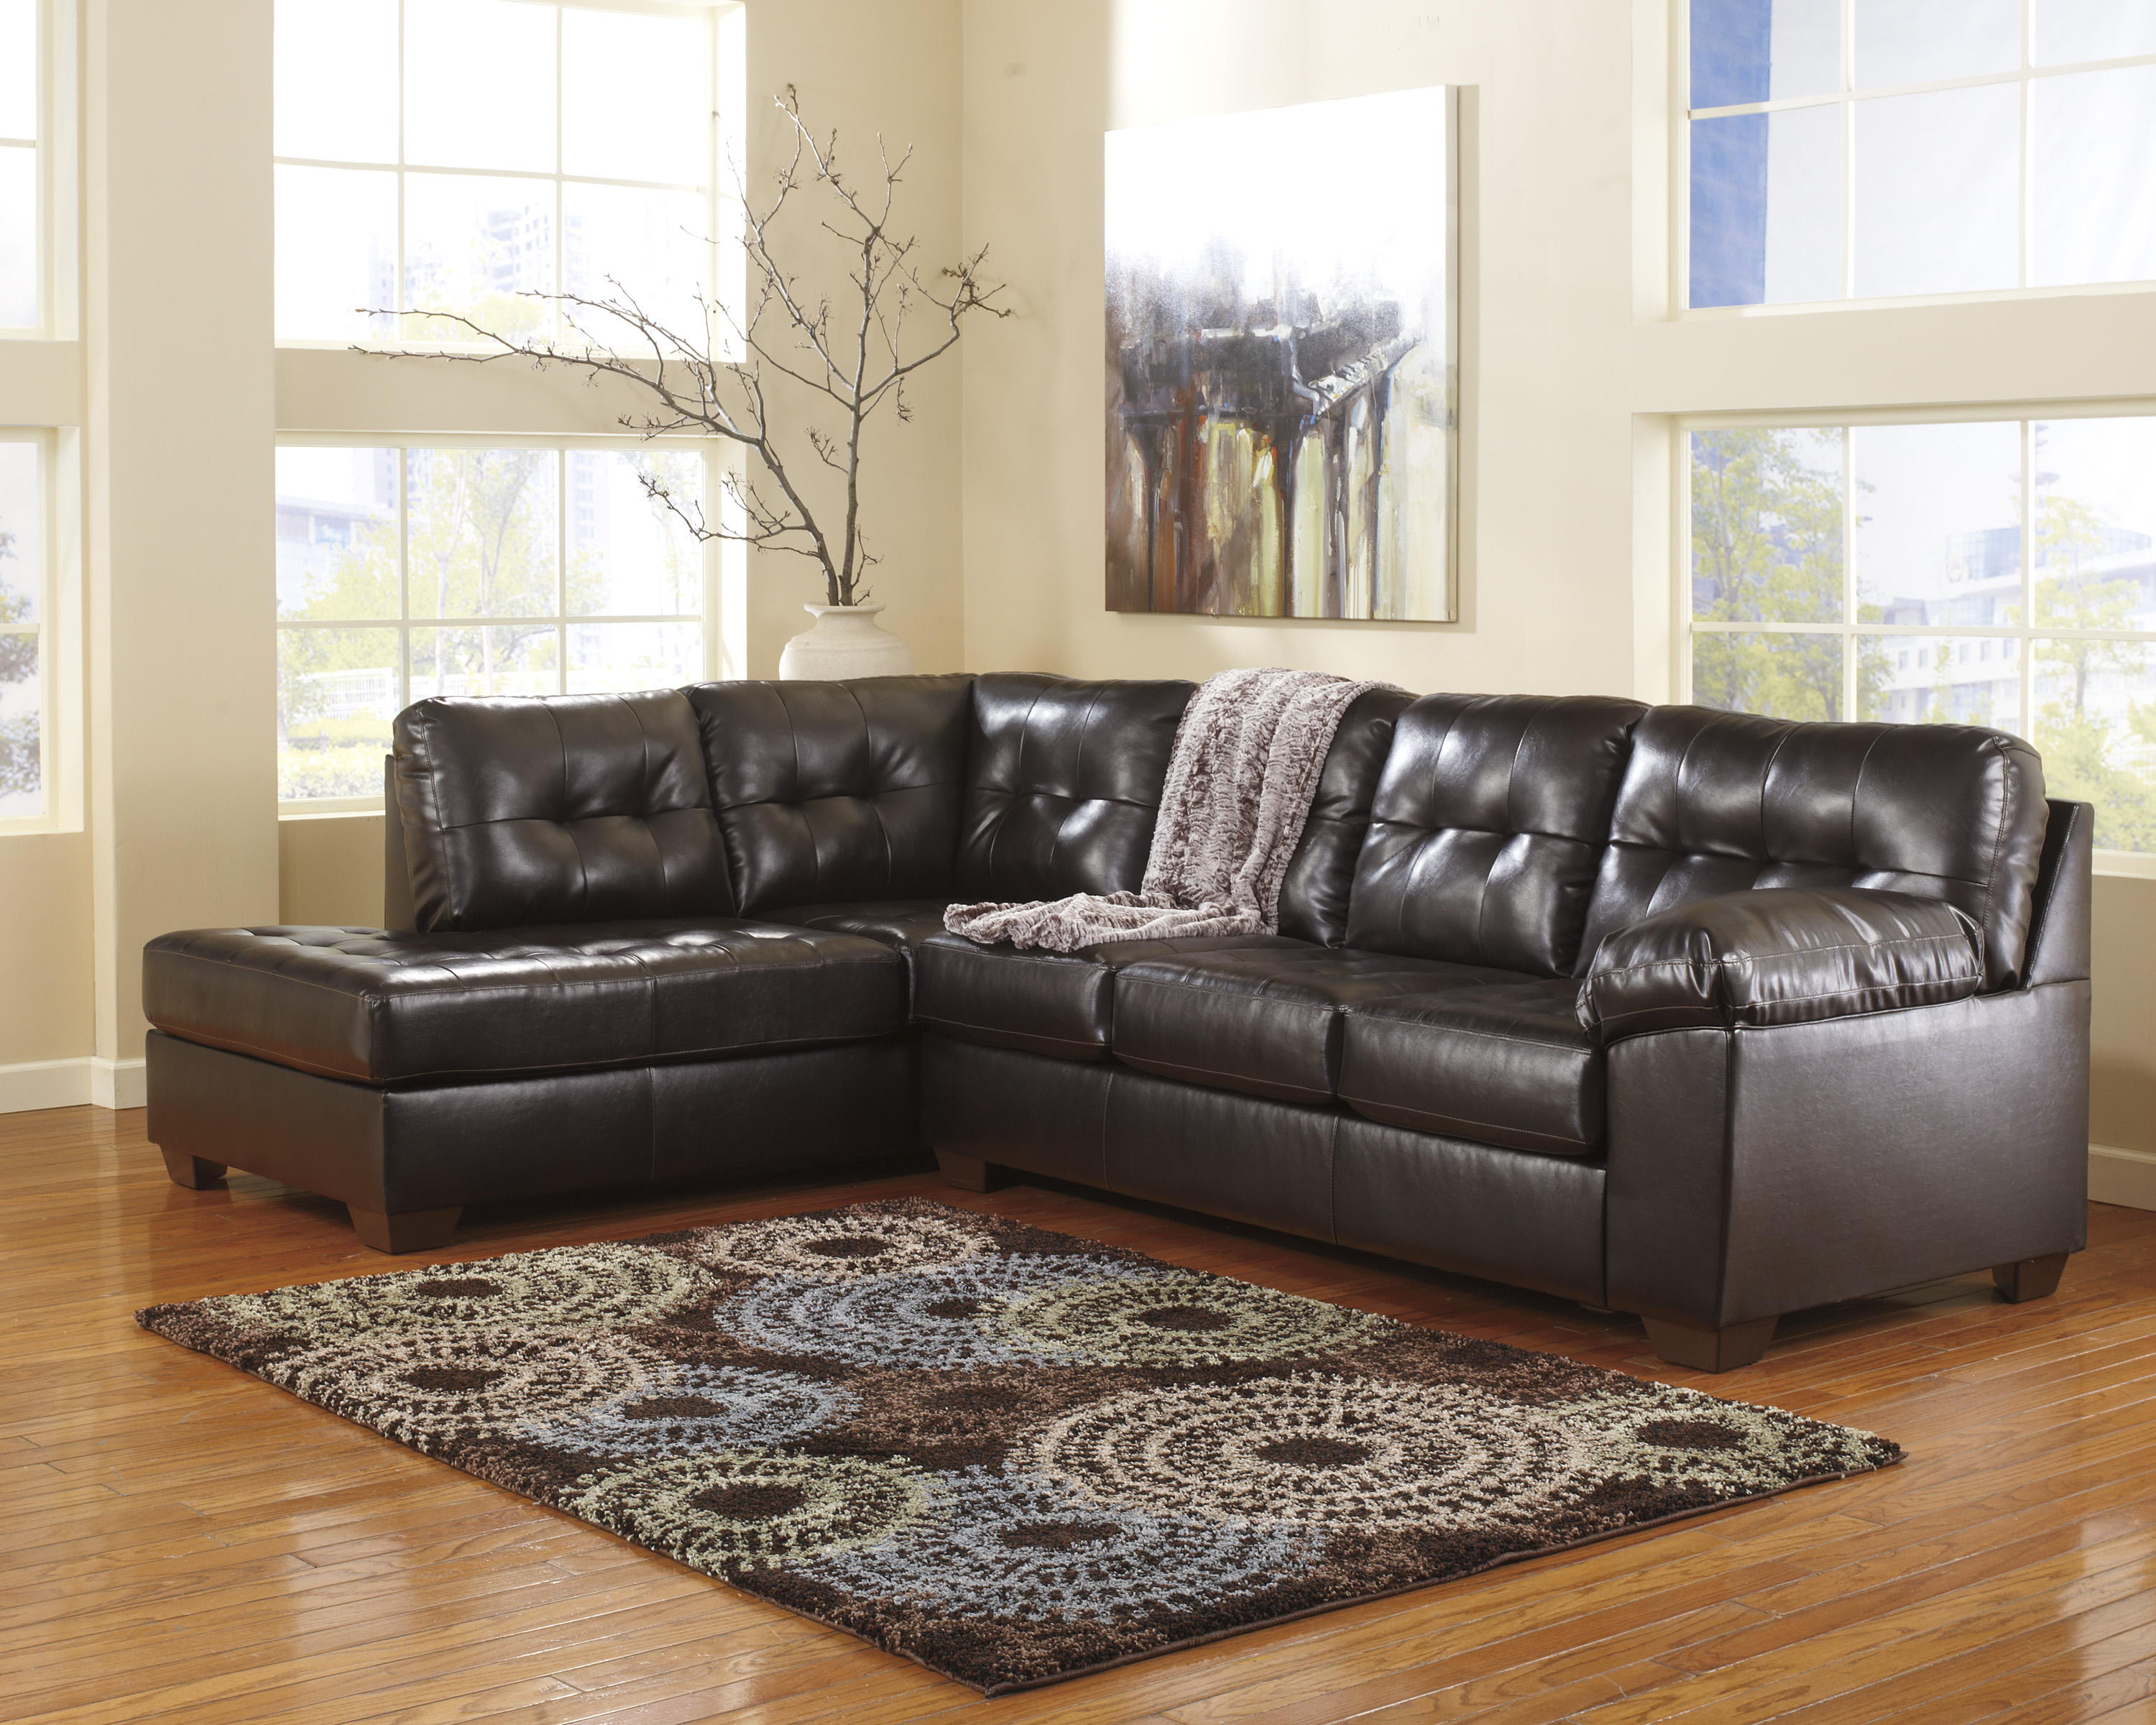 Alliston DuraBlend Chocolate Sectional With Left Chaise  / $23.99 A Week